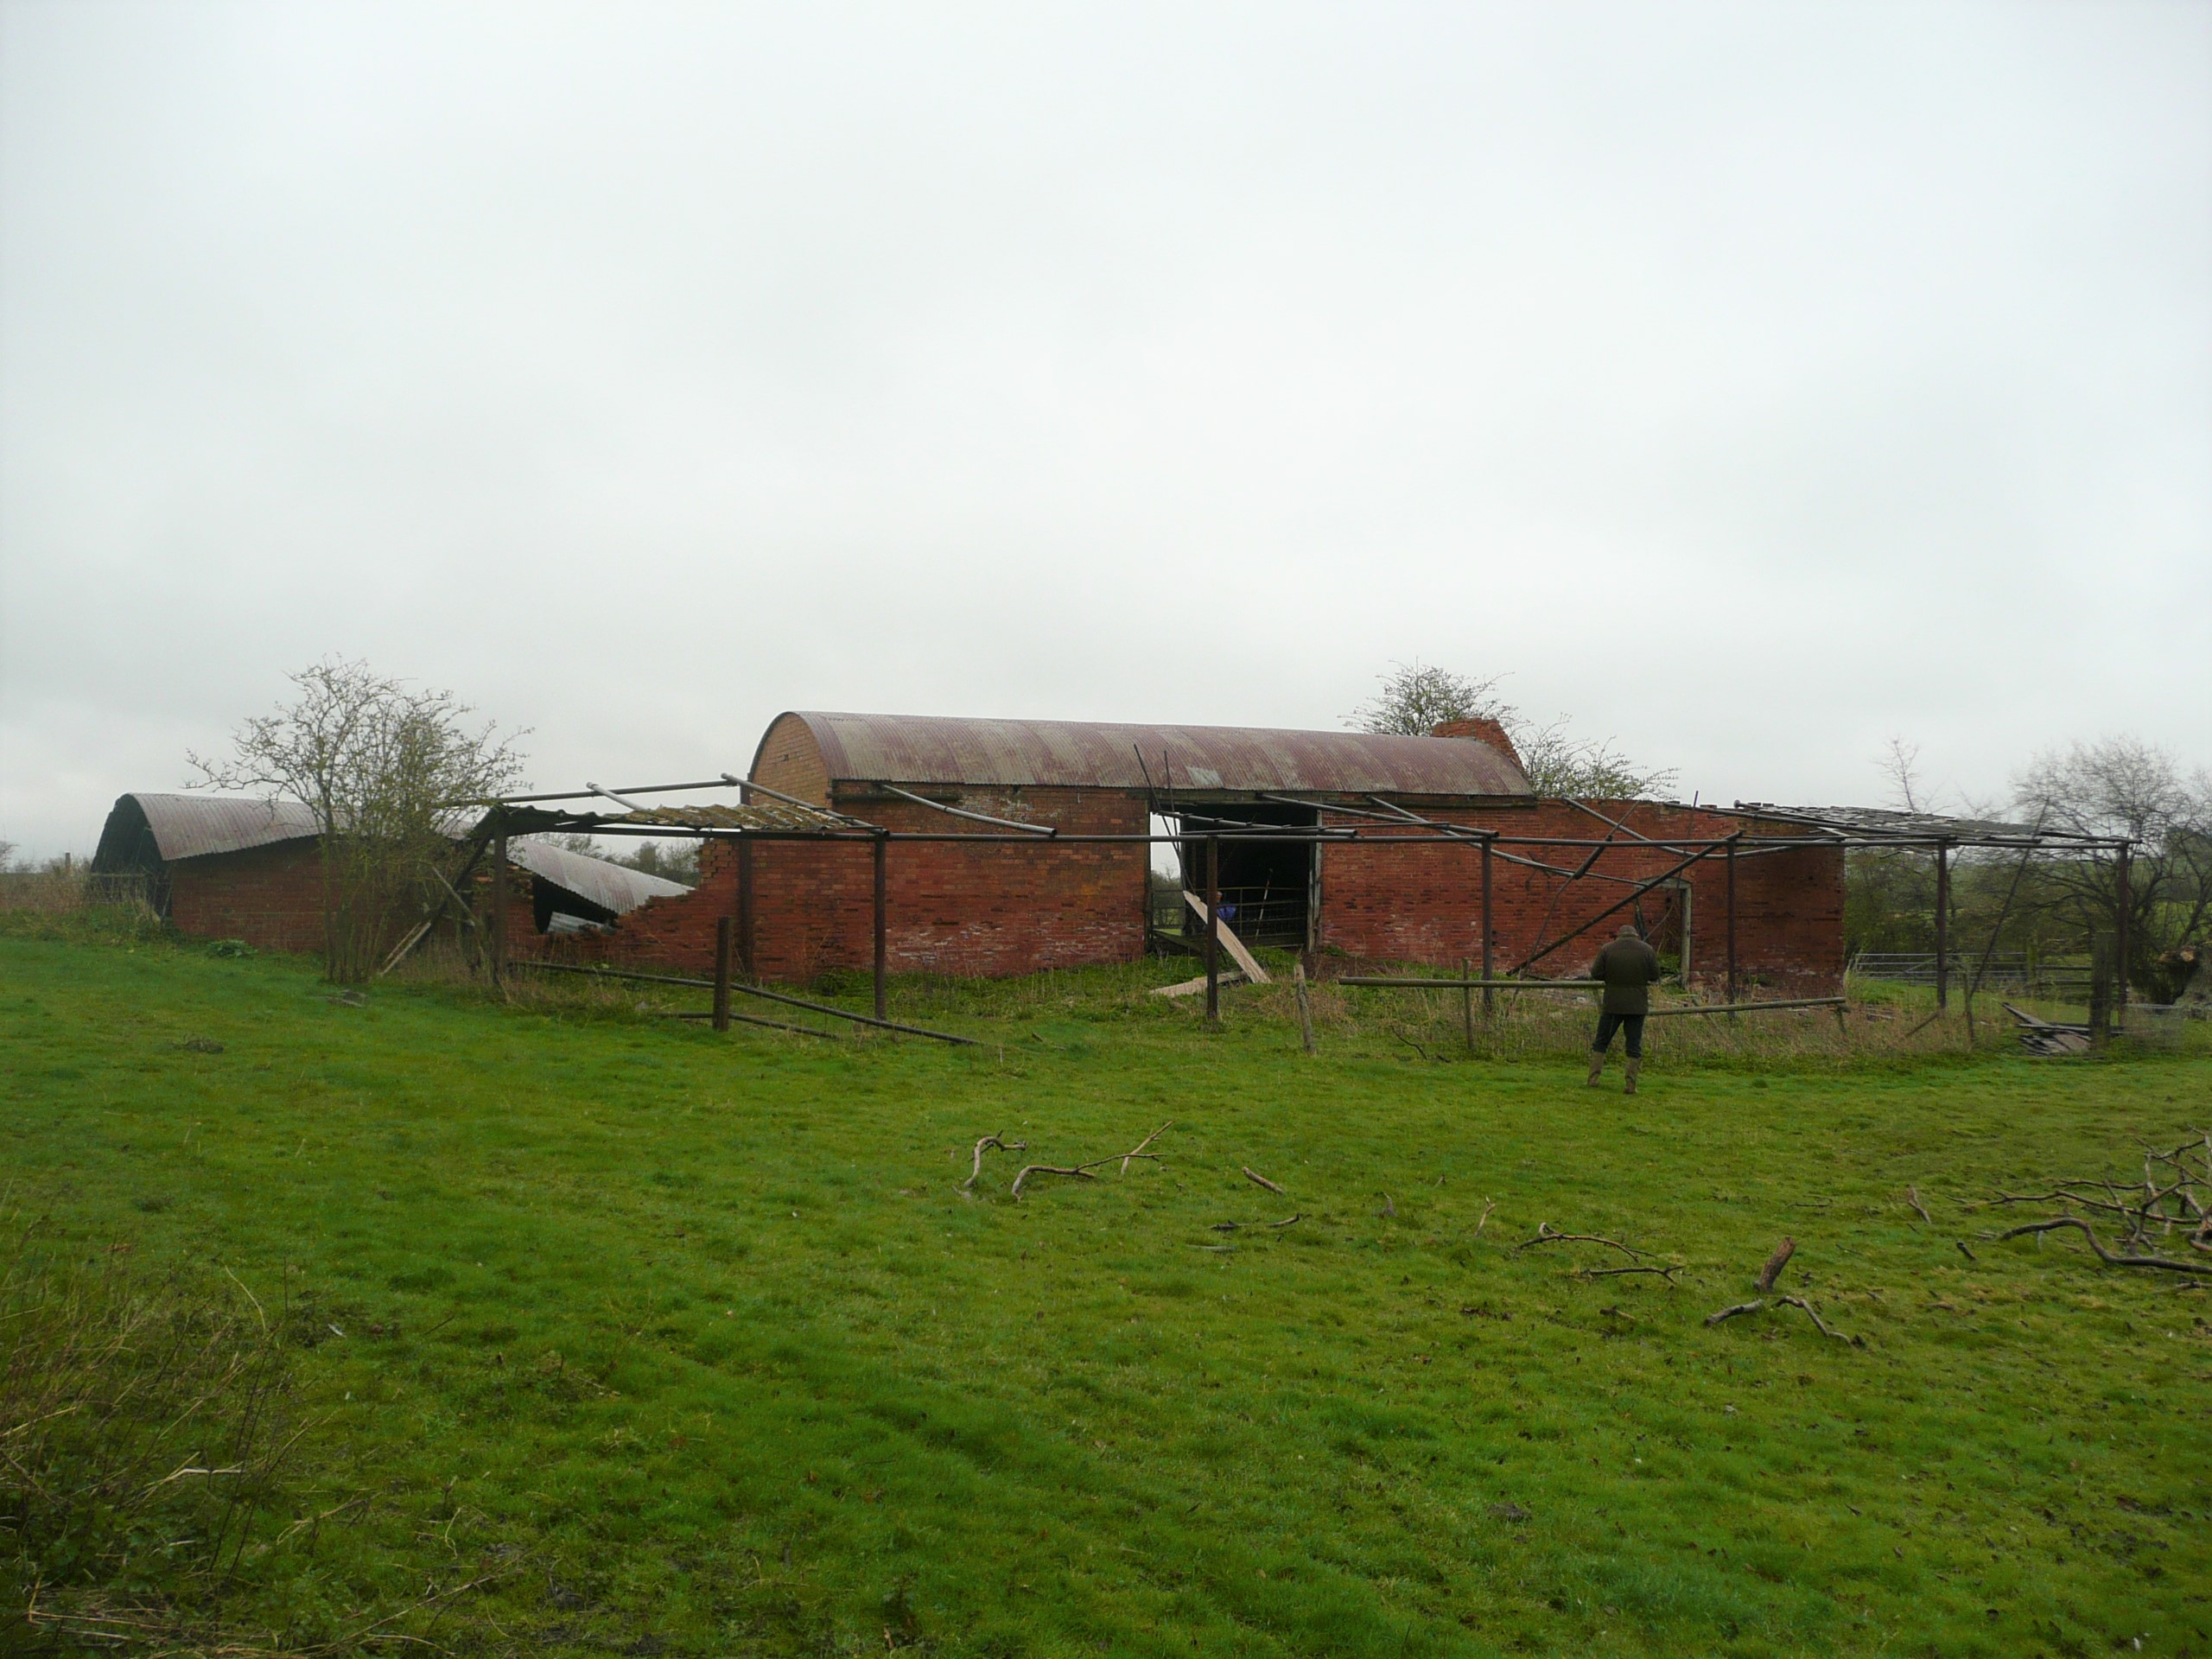 Smallbrook Barn Admington - before